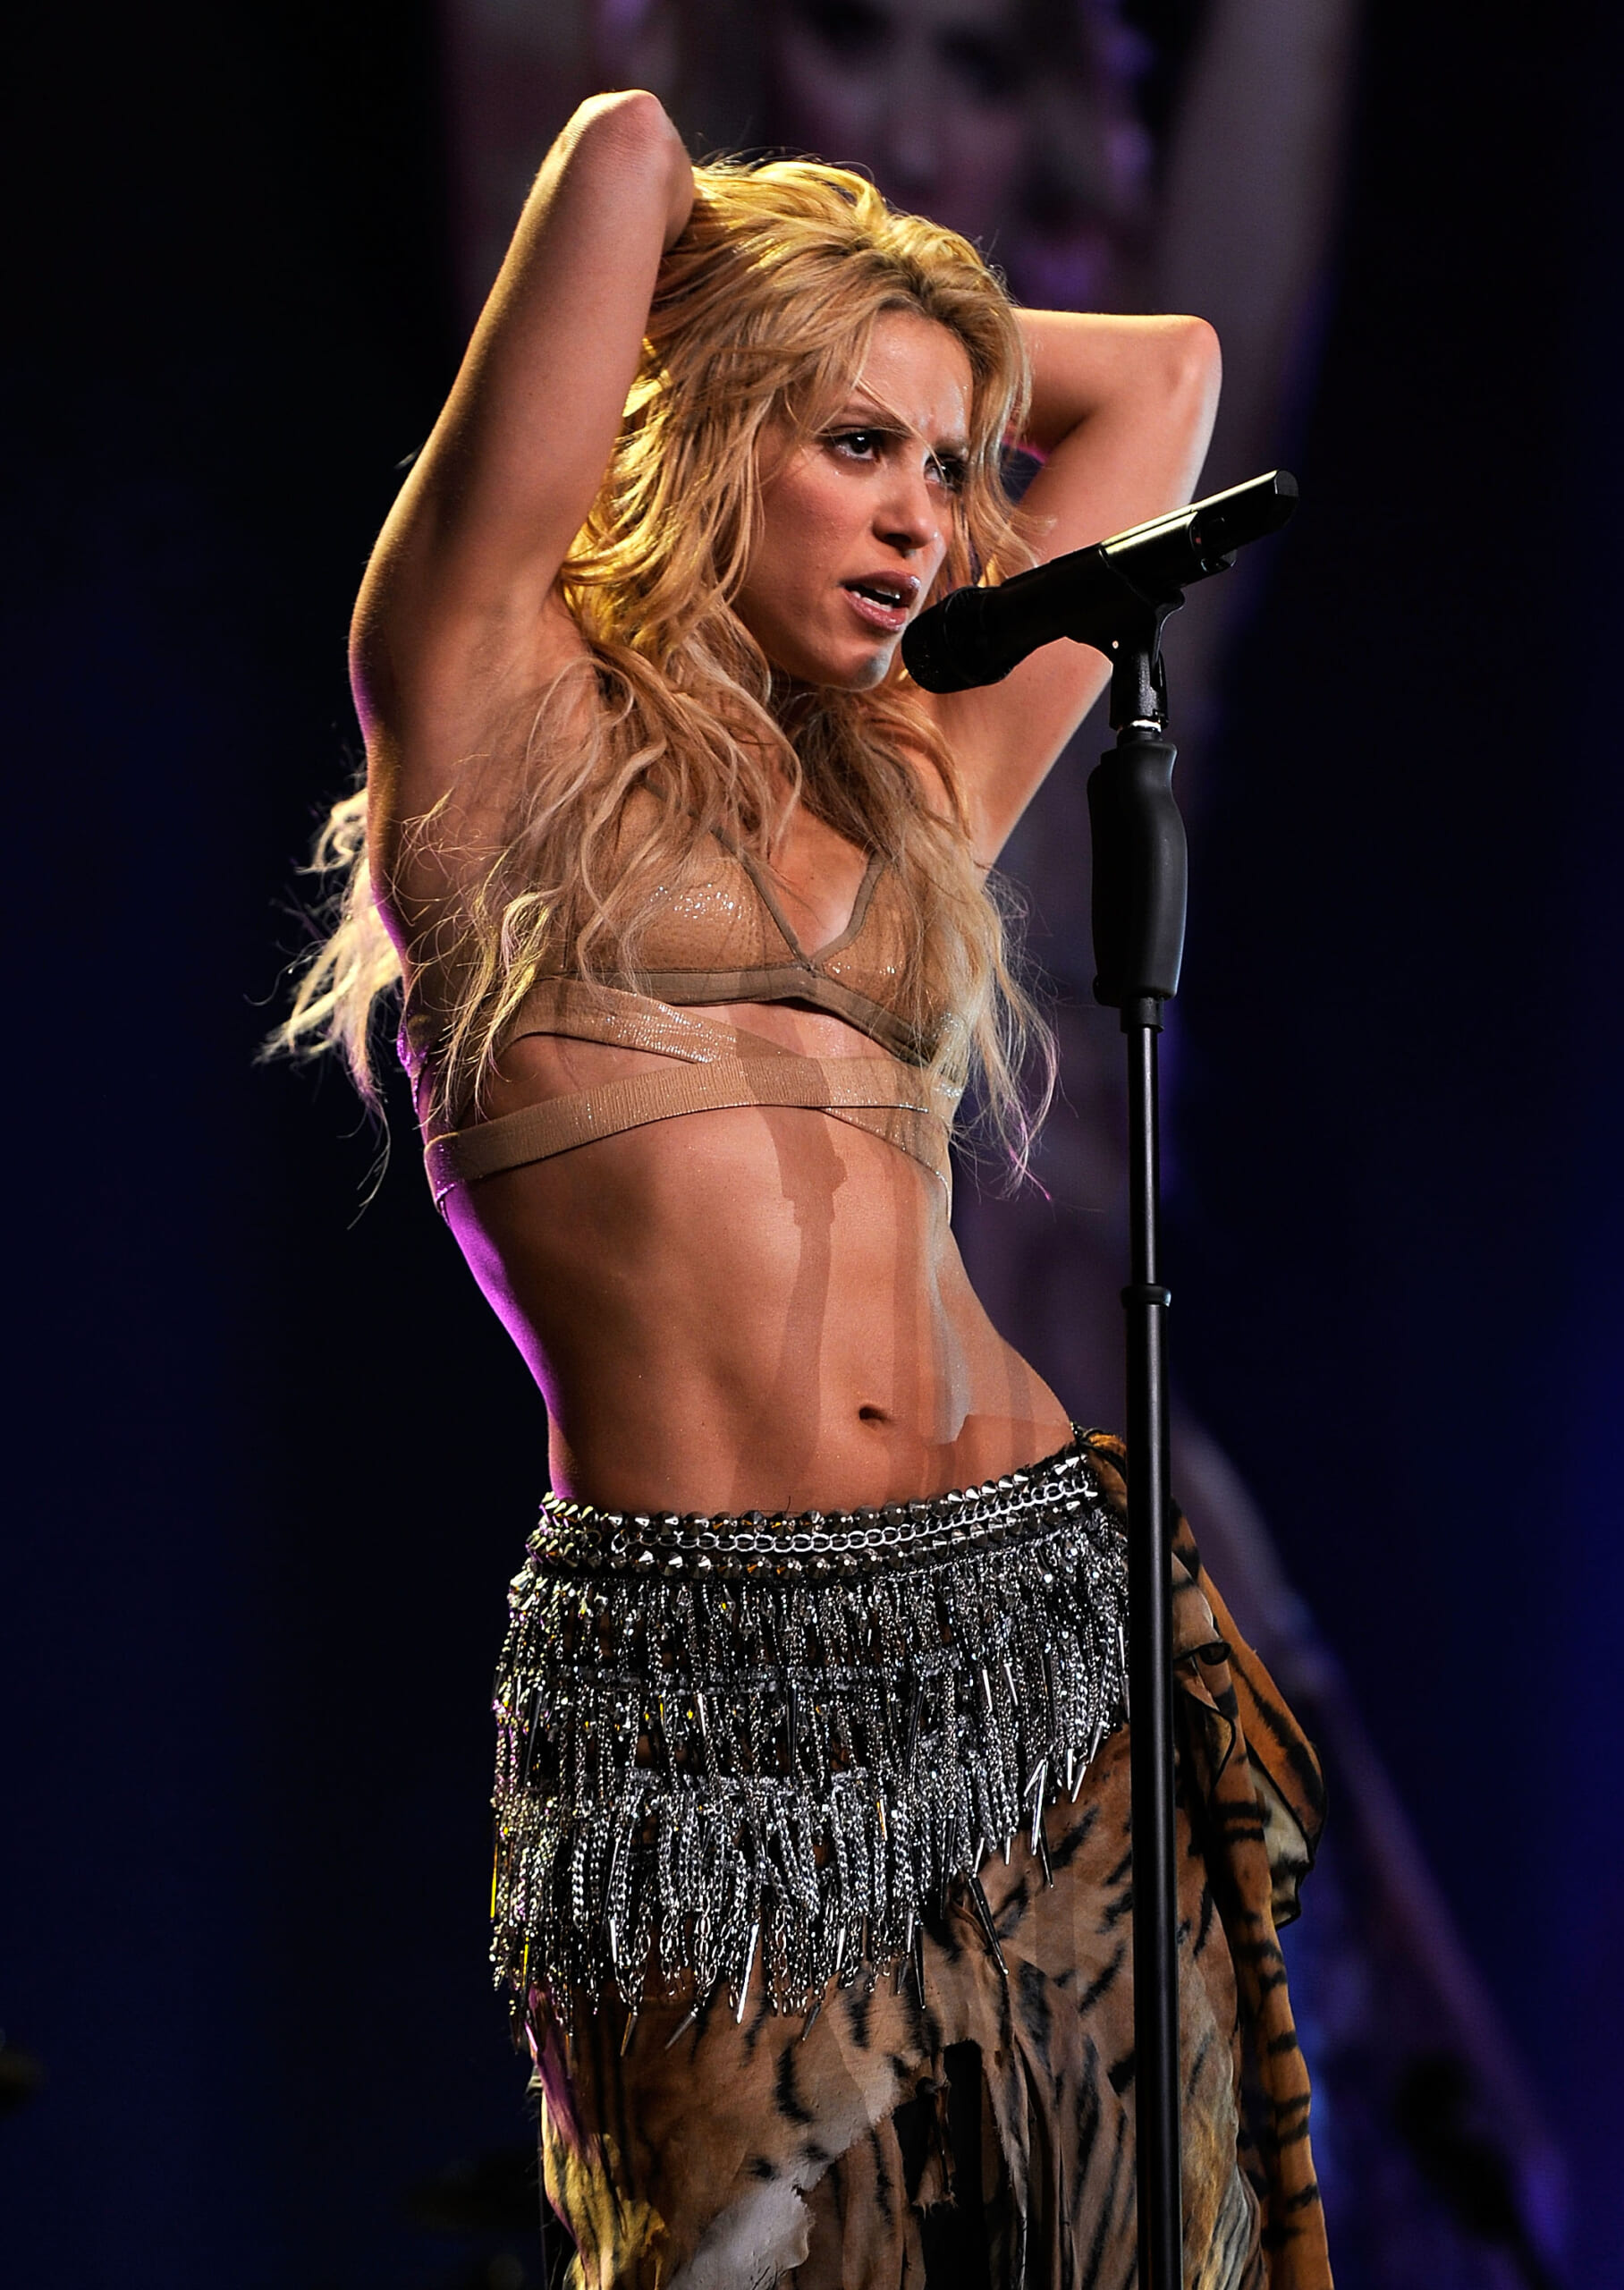 Shakira performs at Madison Square Garden on September 21, 2010 in New York, New York. (Photo by Larry Busacca/Getty Images for Epic)